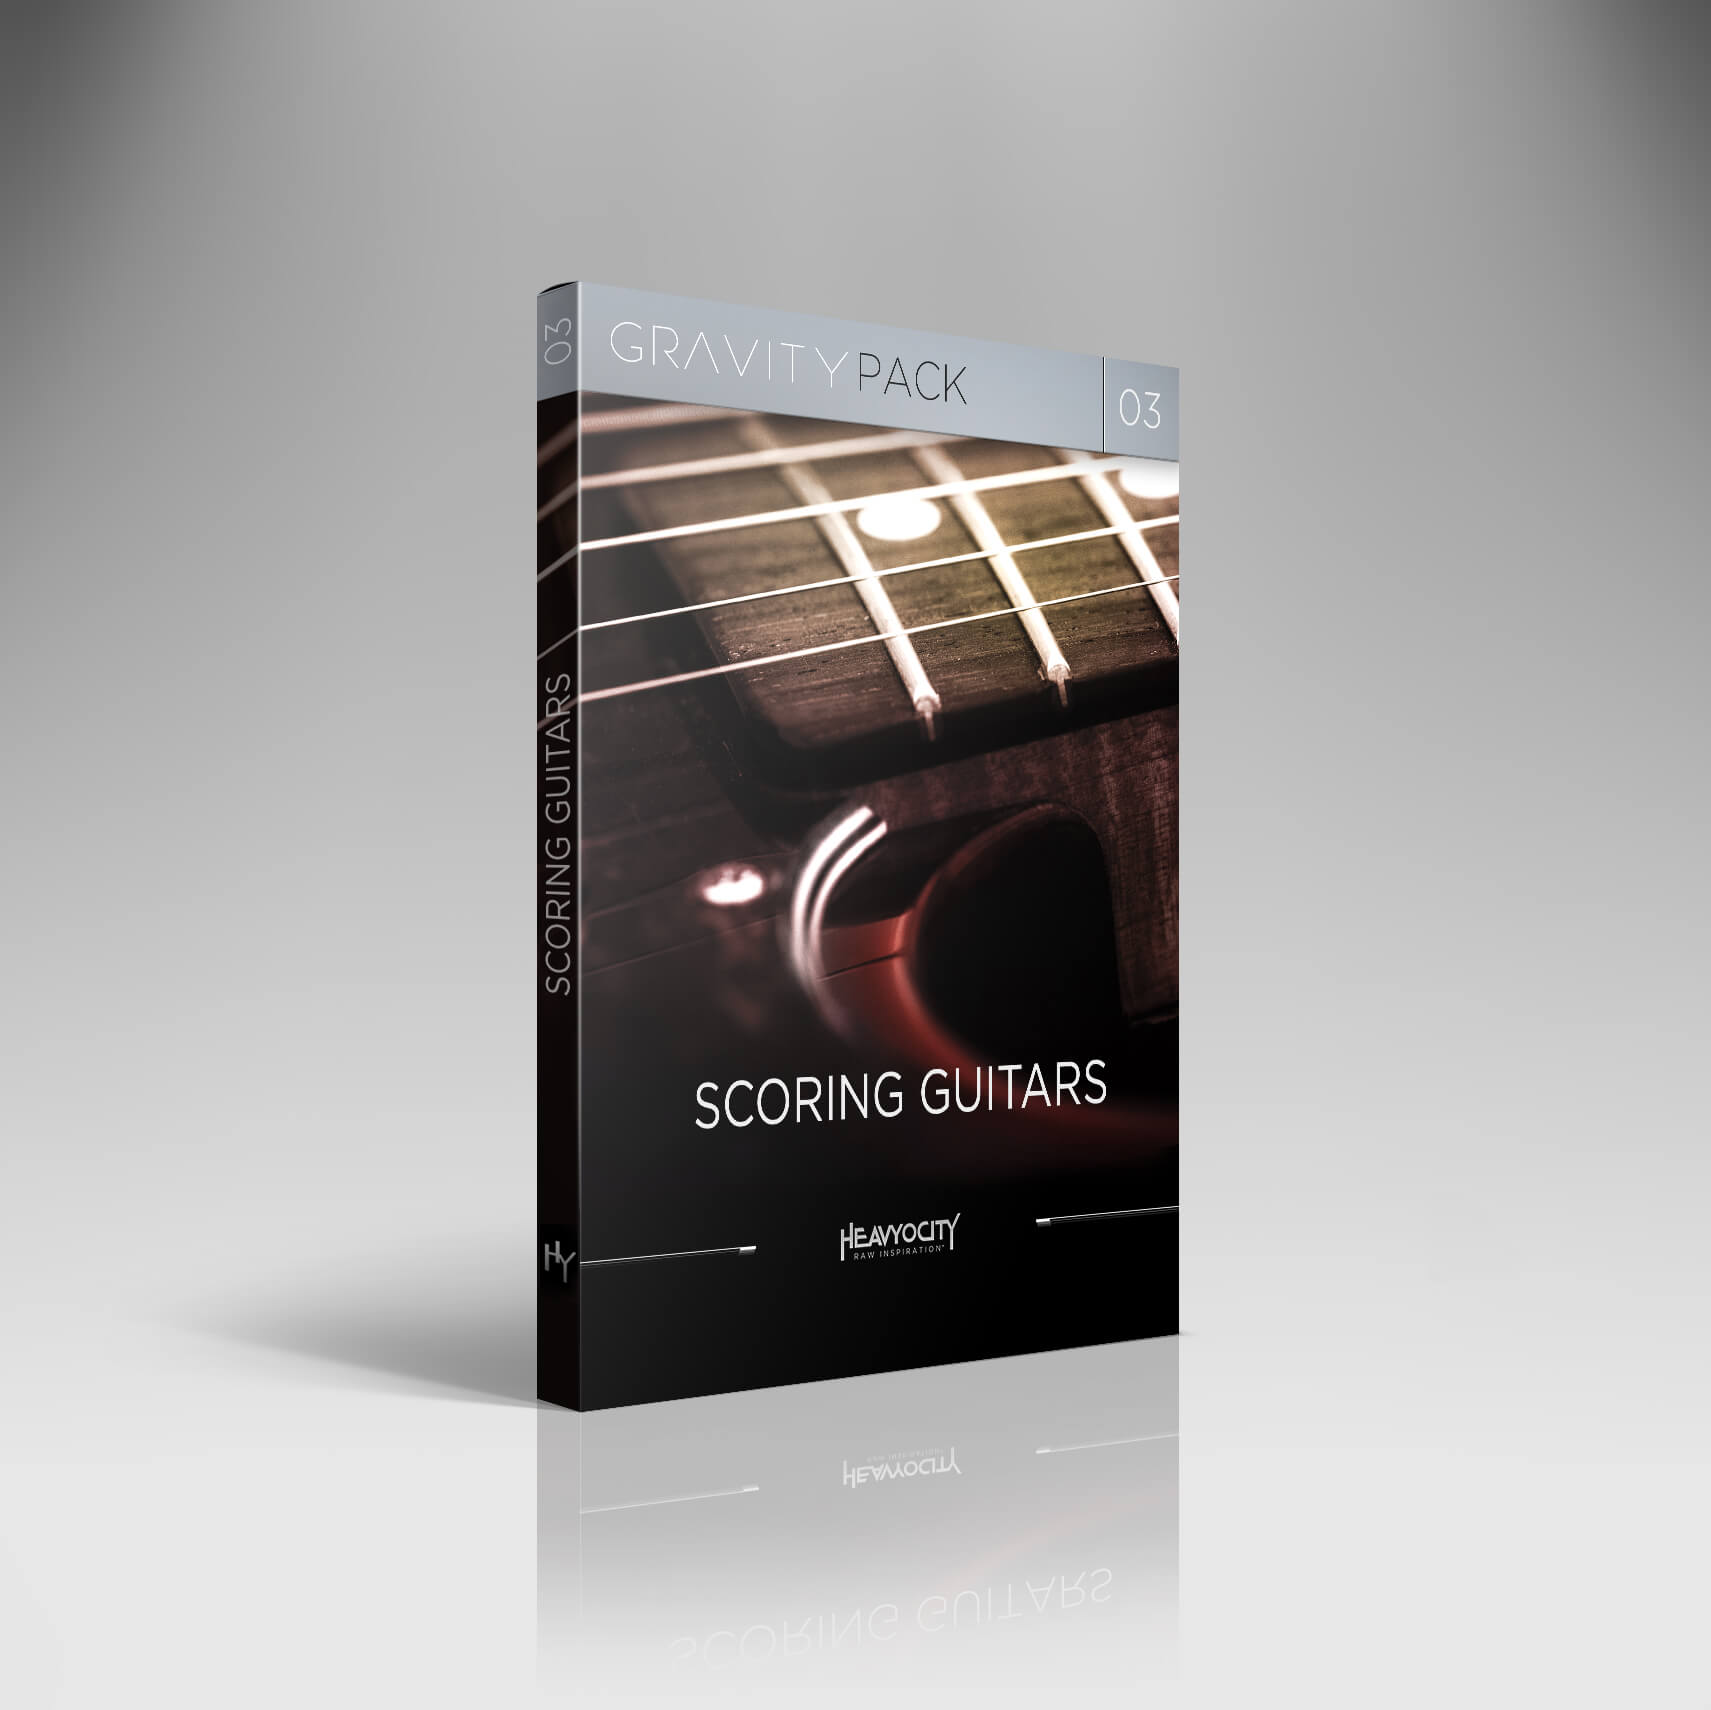 Don't Get acoustic string yet, first read this